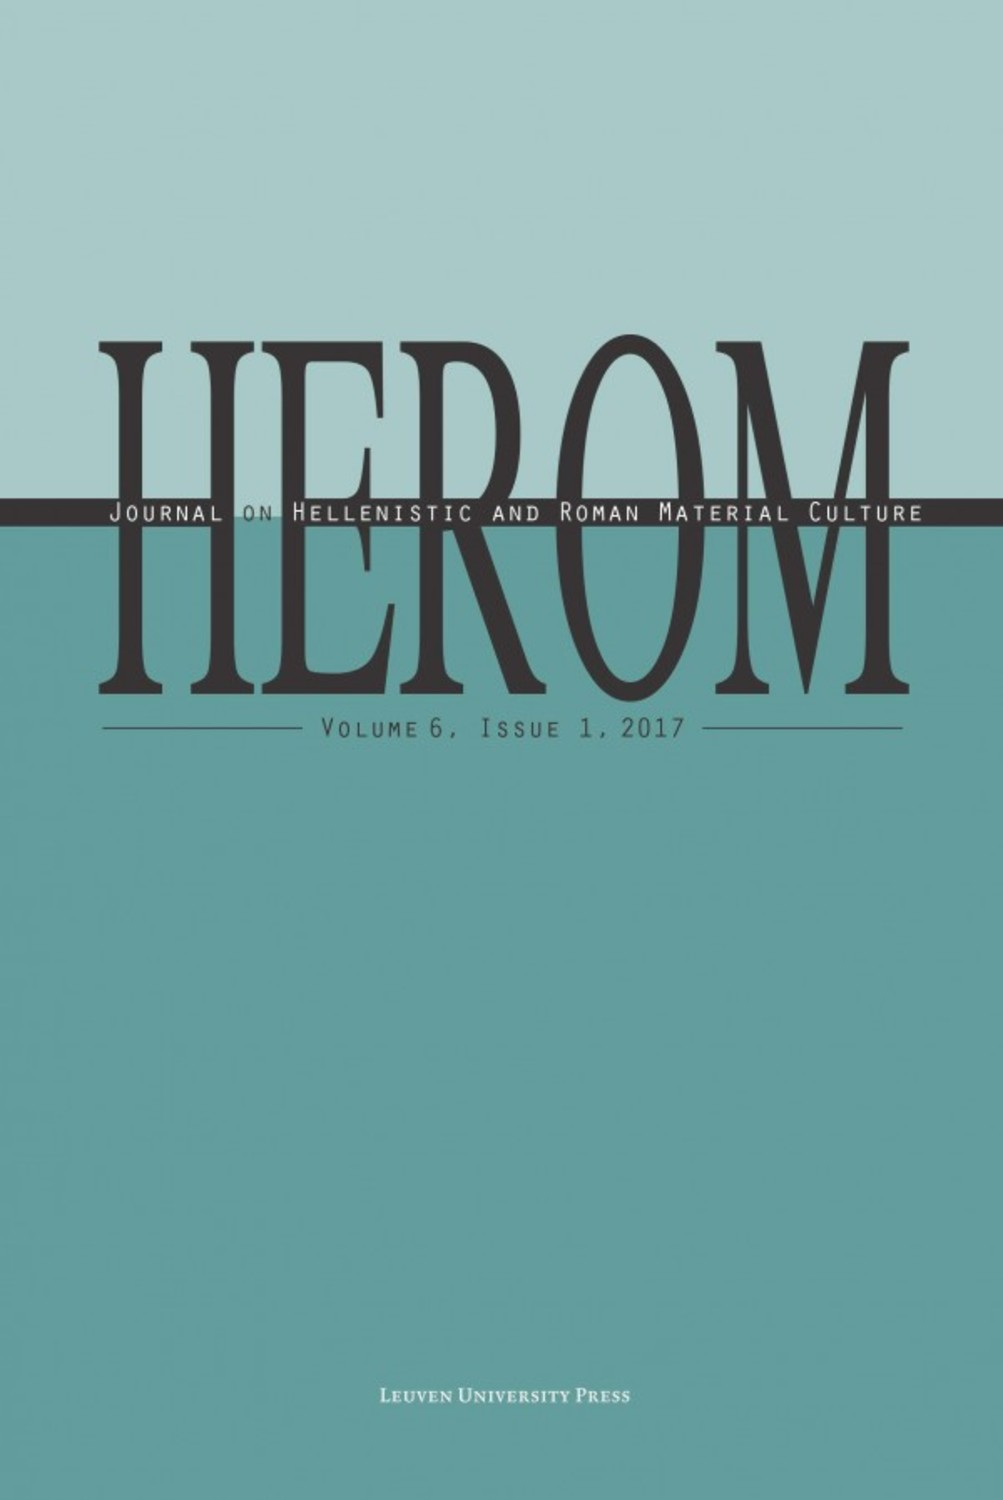 HEROM Volume 6 Issue 1, 2017 (Journal Subscription)